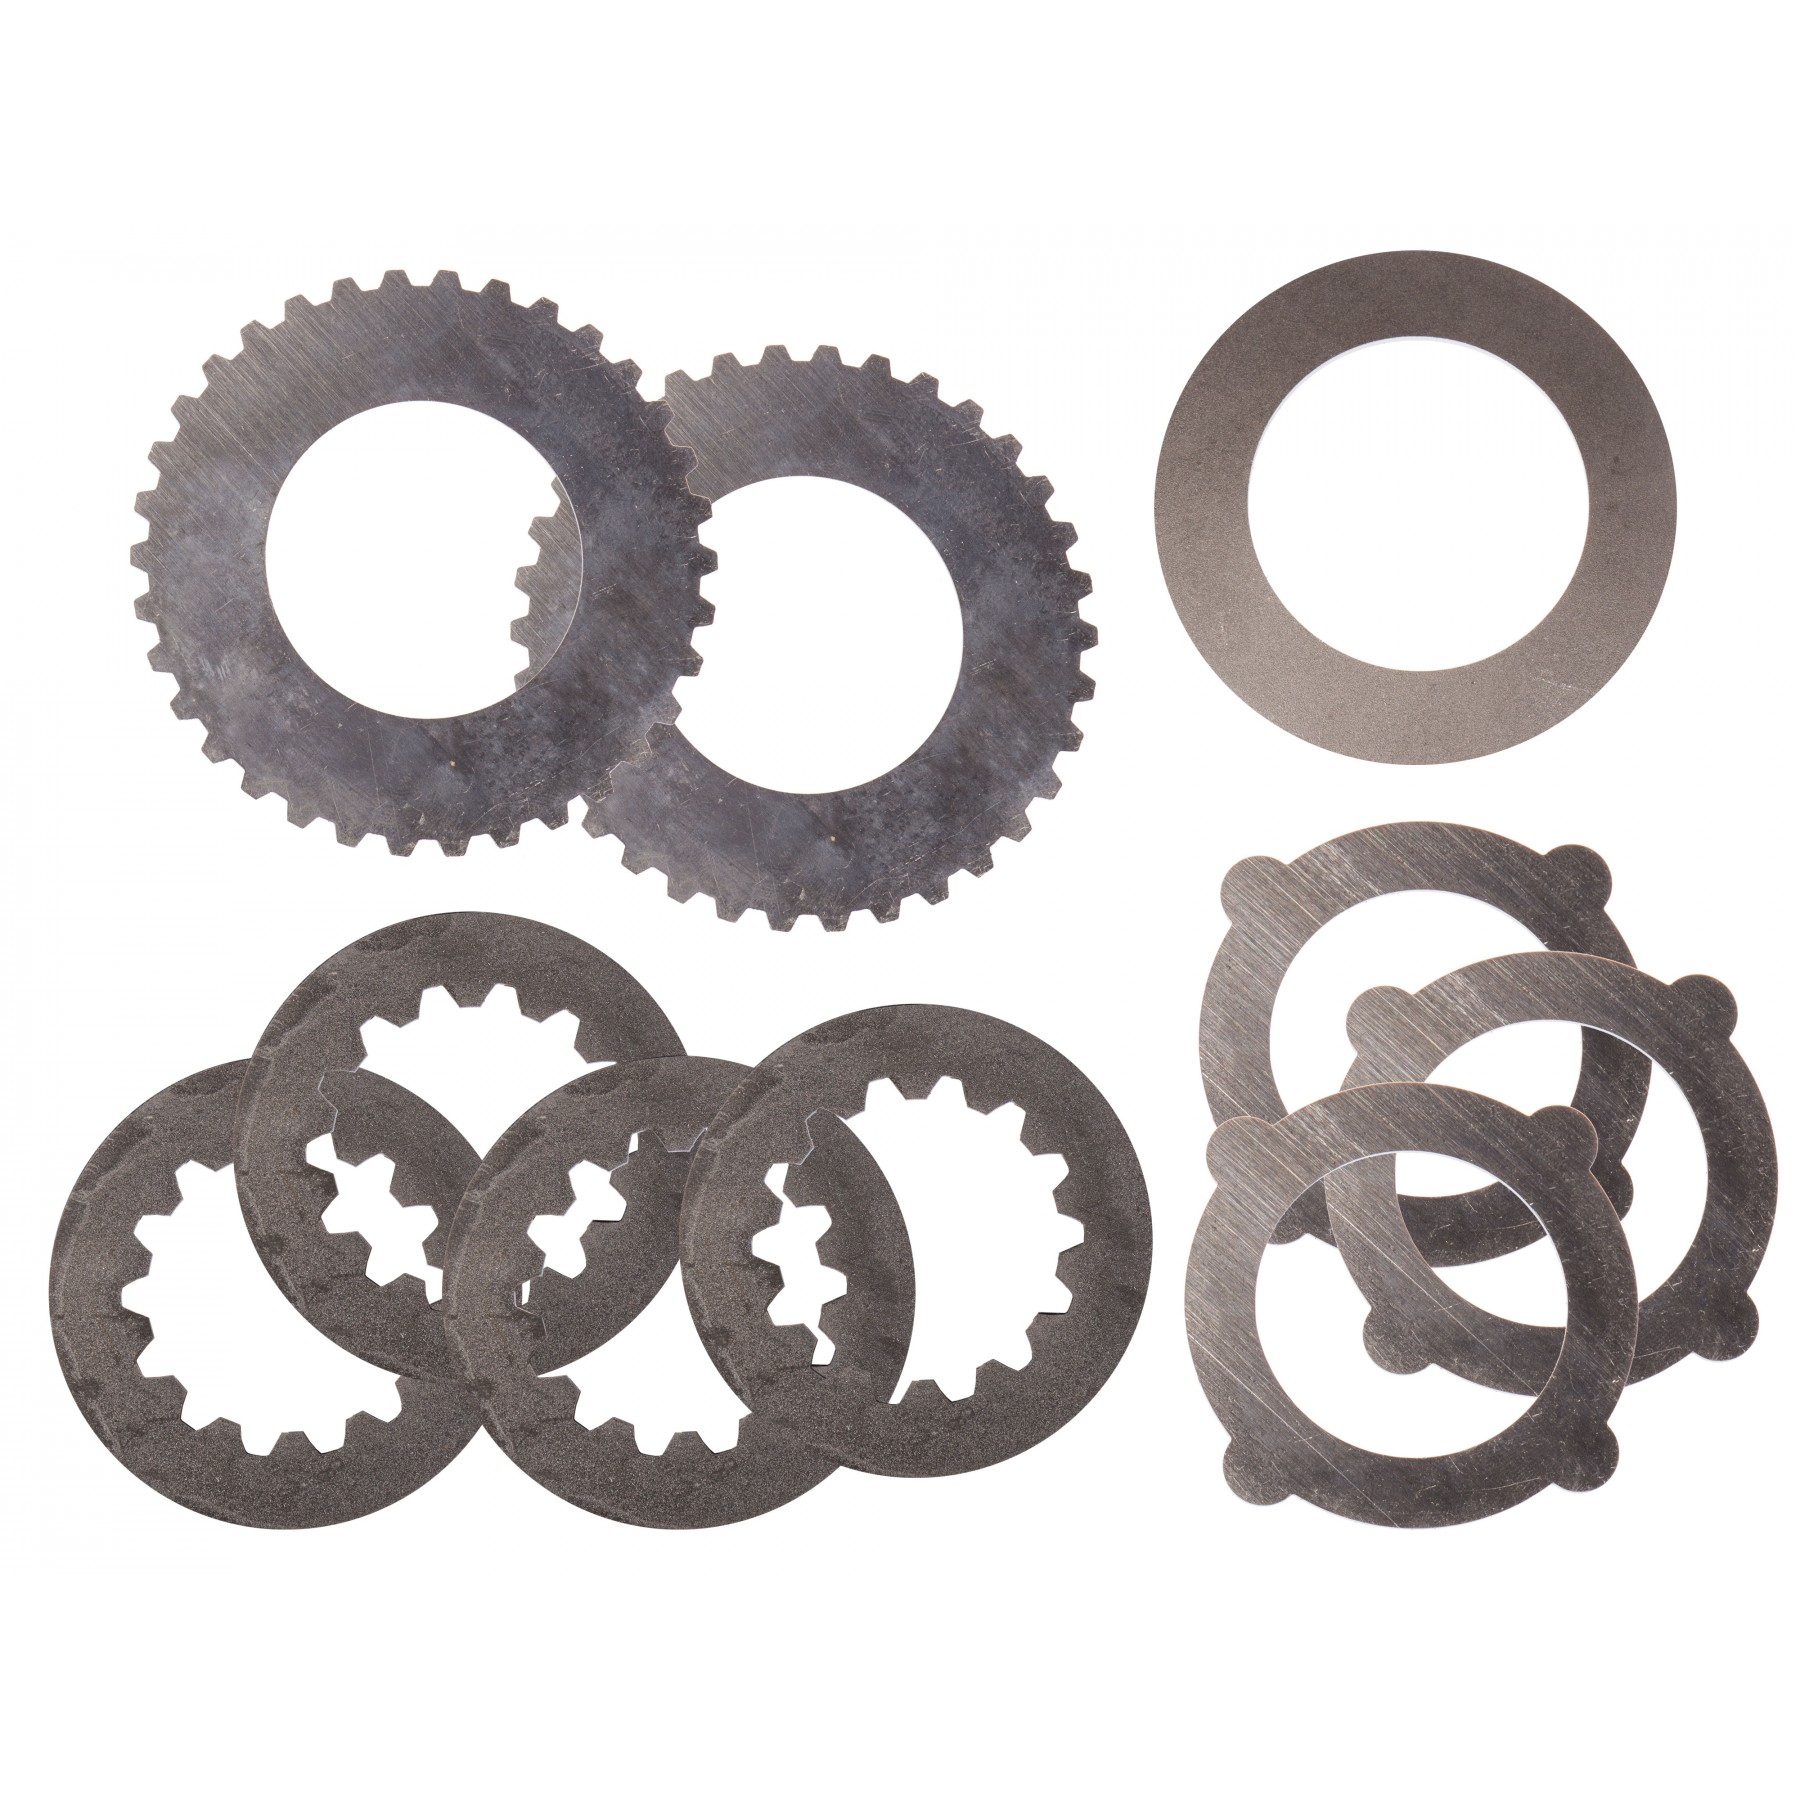 REPLACEMENT CLUTCH PACK FOR NXG LSD